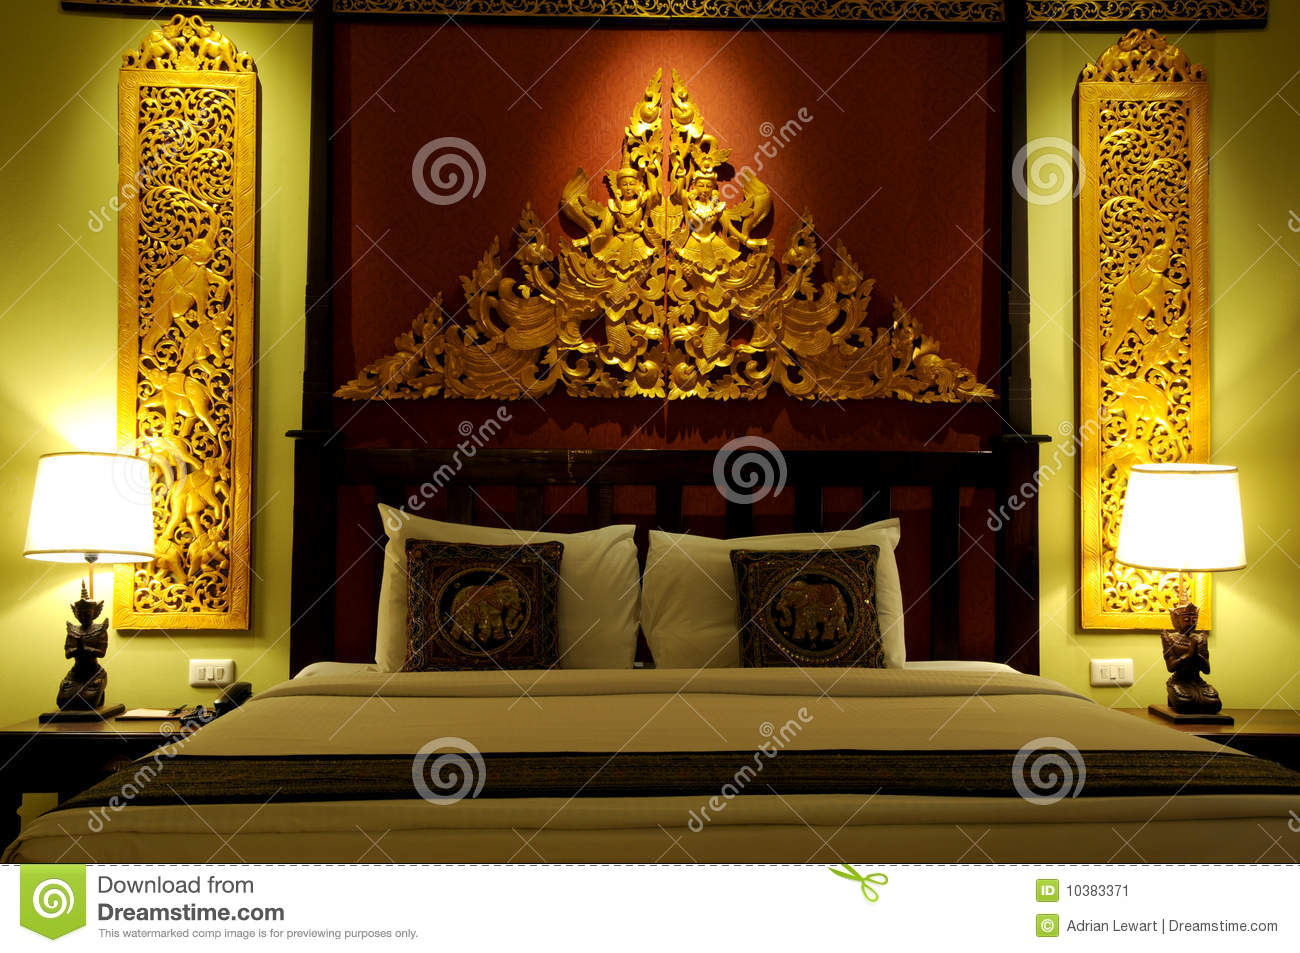 Asian style bedroom stock image image 10383371 for Well decorated bedroom